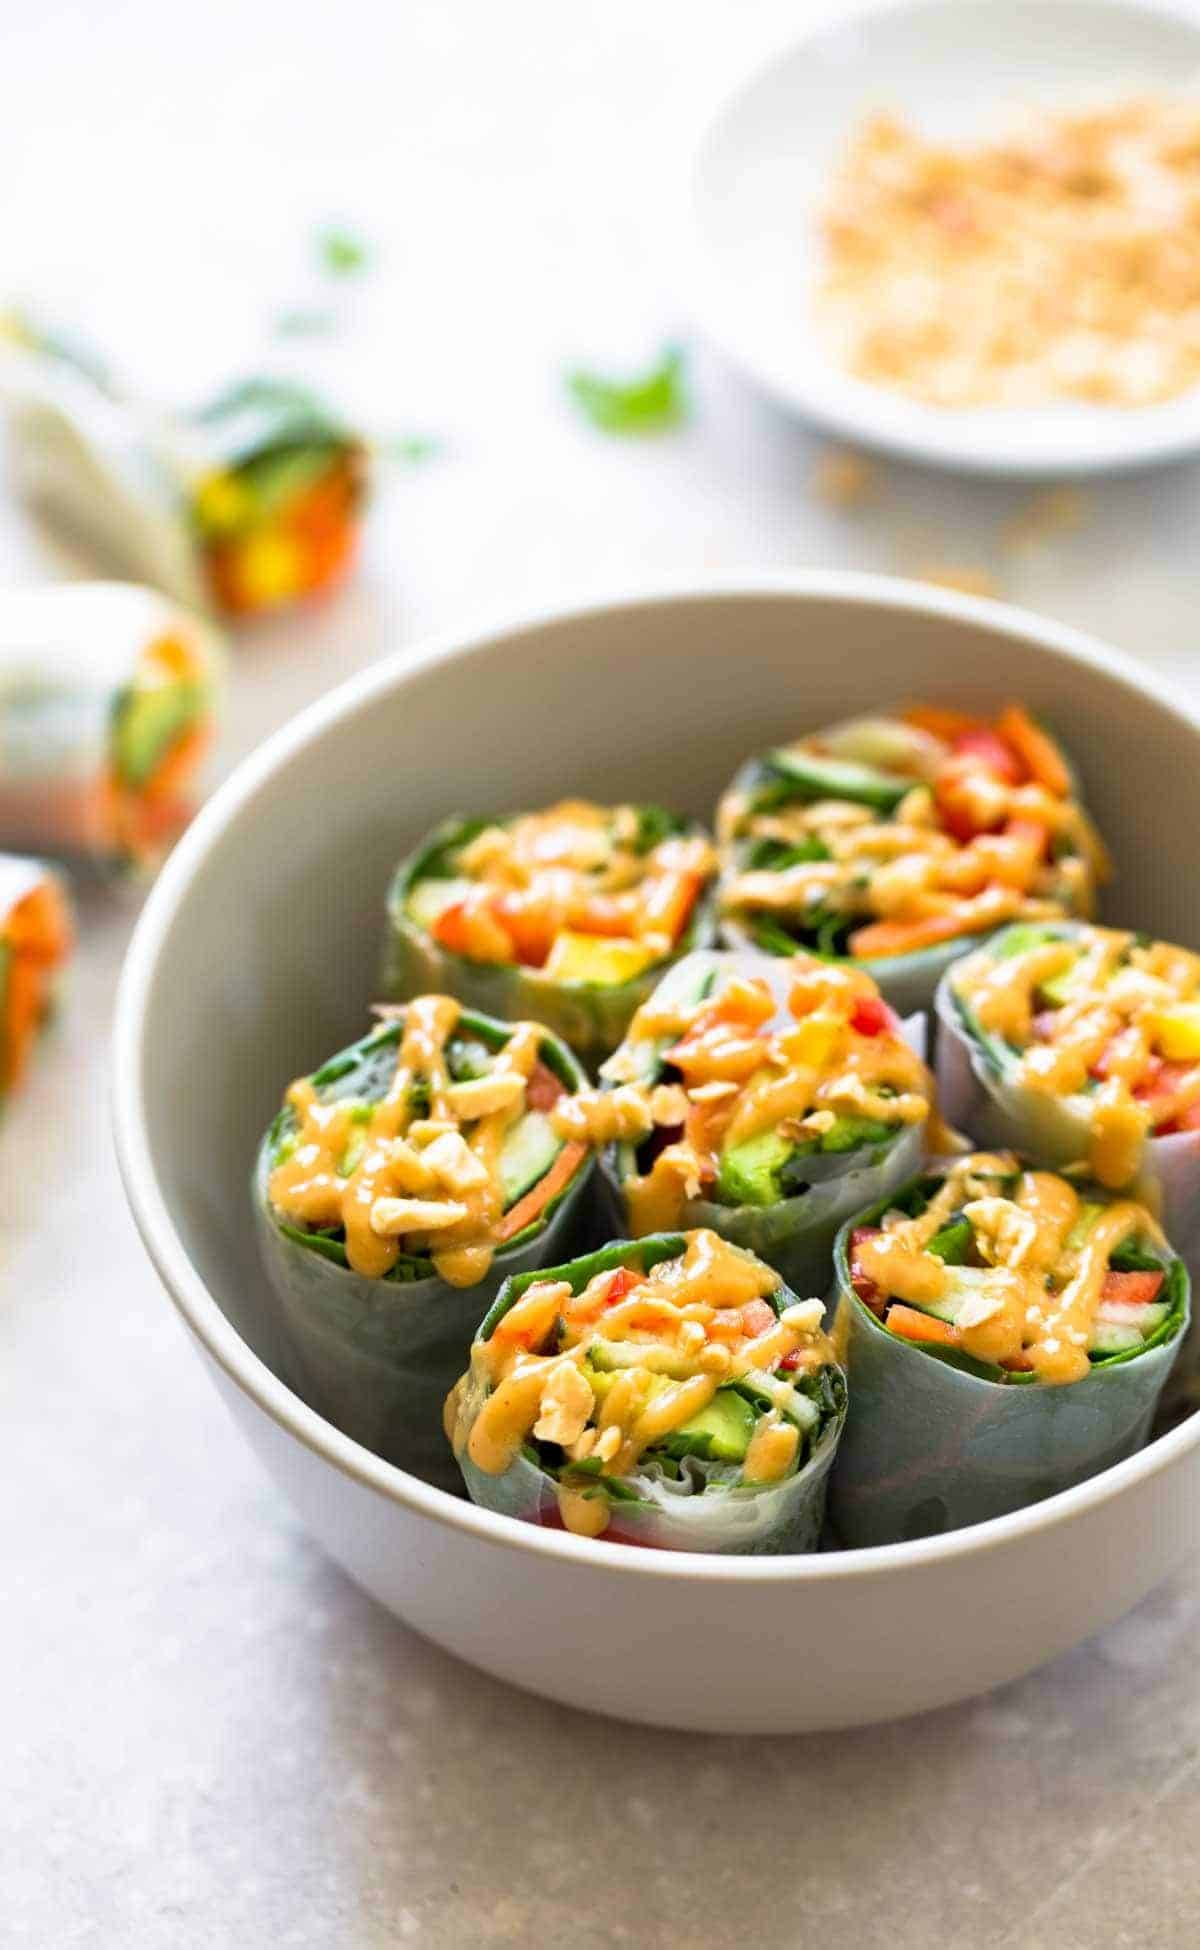 Thai summer rolls with peanut sauce recipe pinch of yum thai summer rolls with peanut sauce in a bowl forumfinder Choice Image